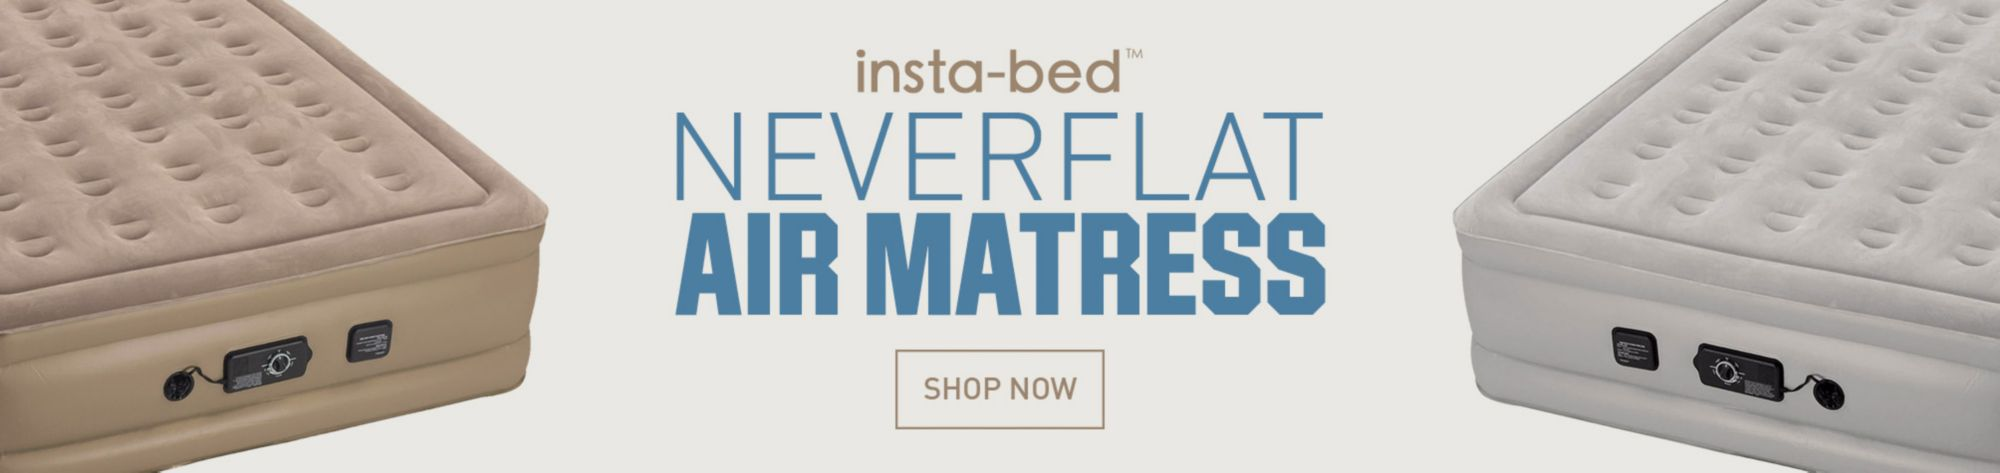 Shop Neverflat Air Matresses